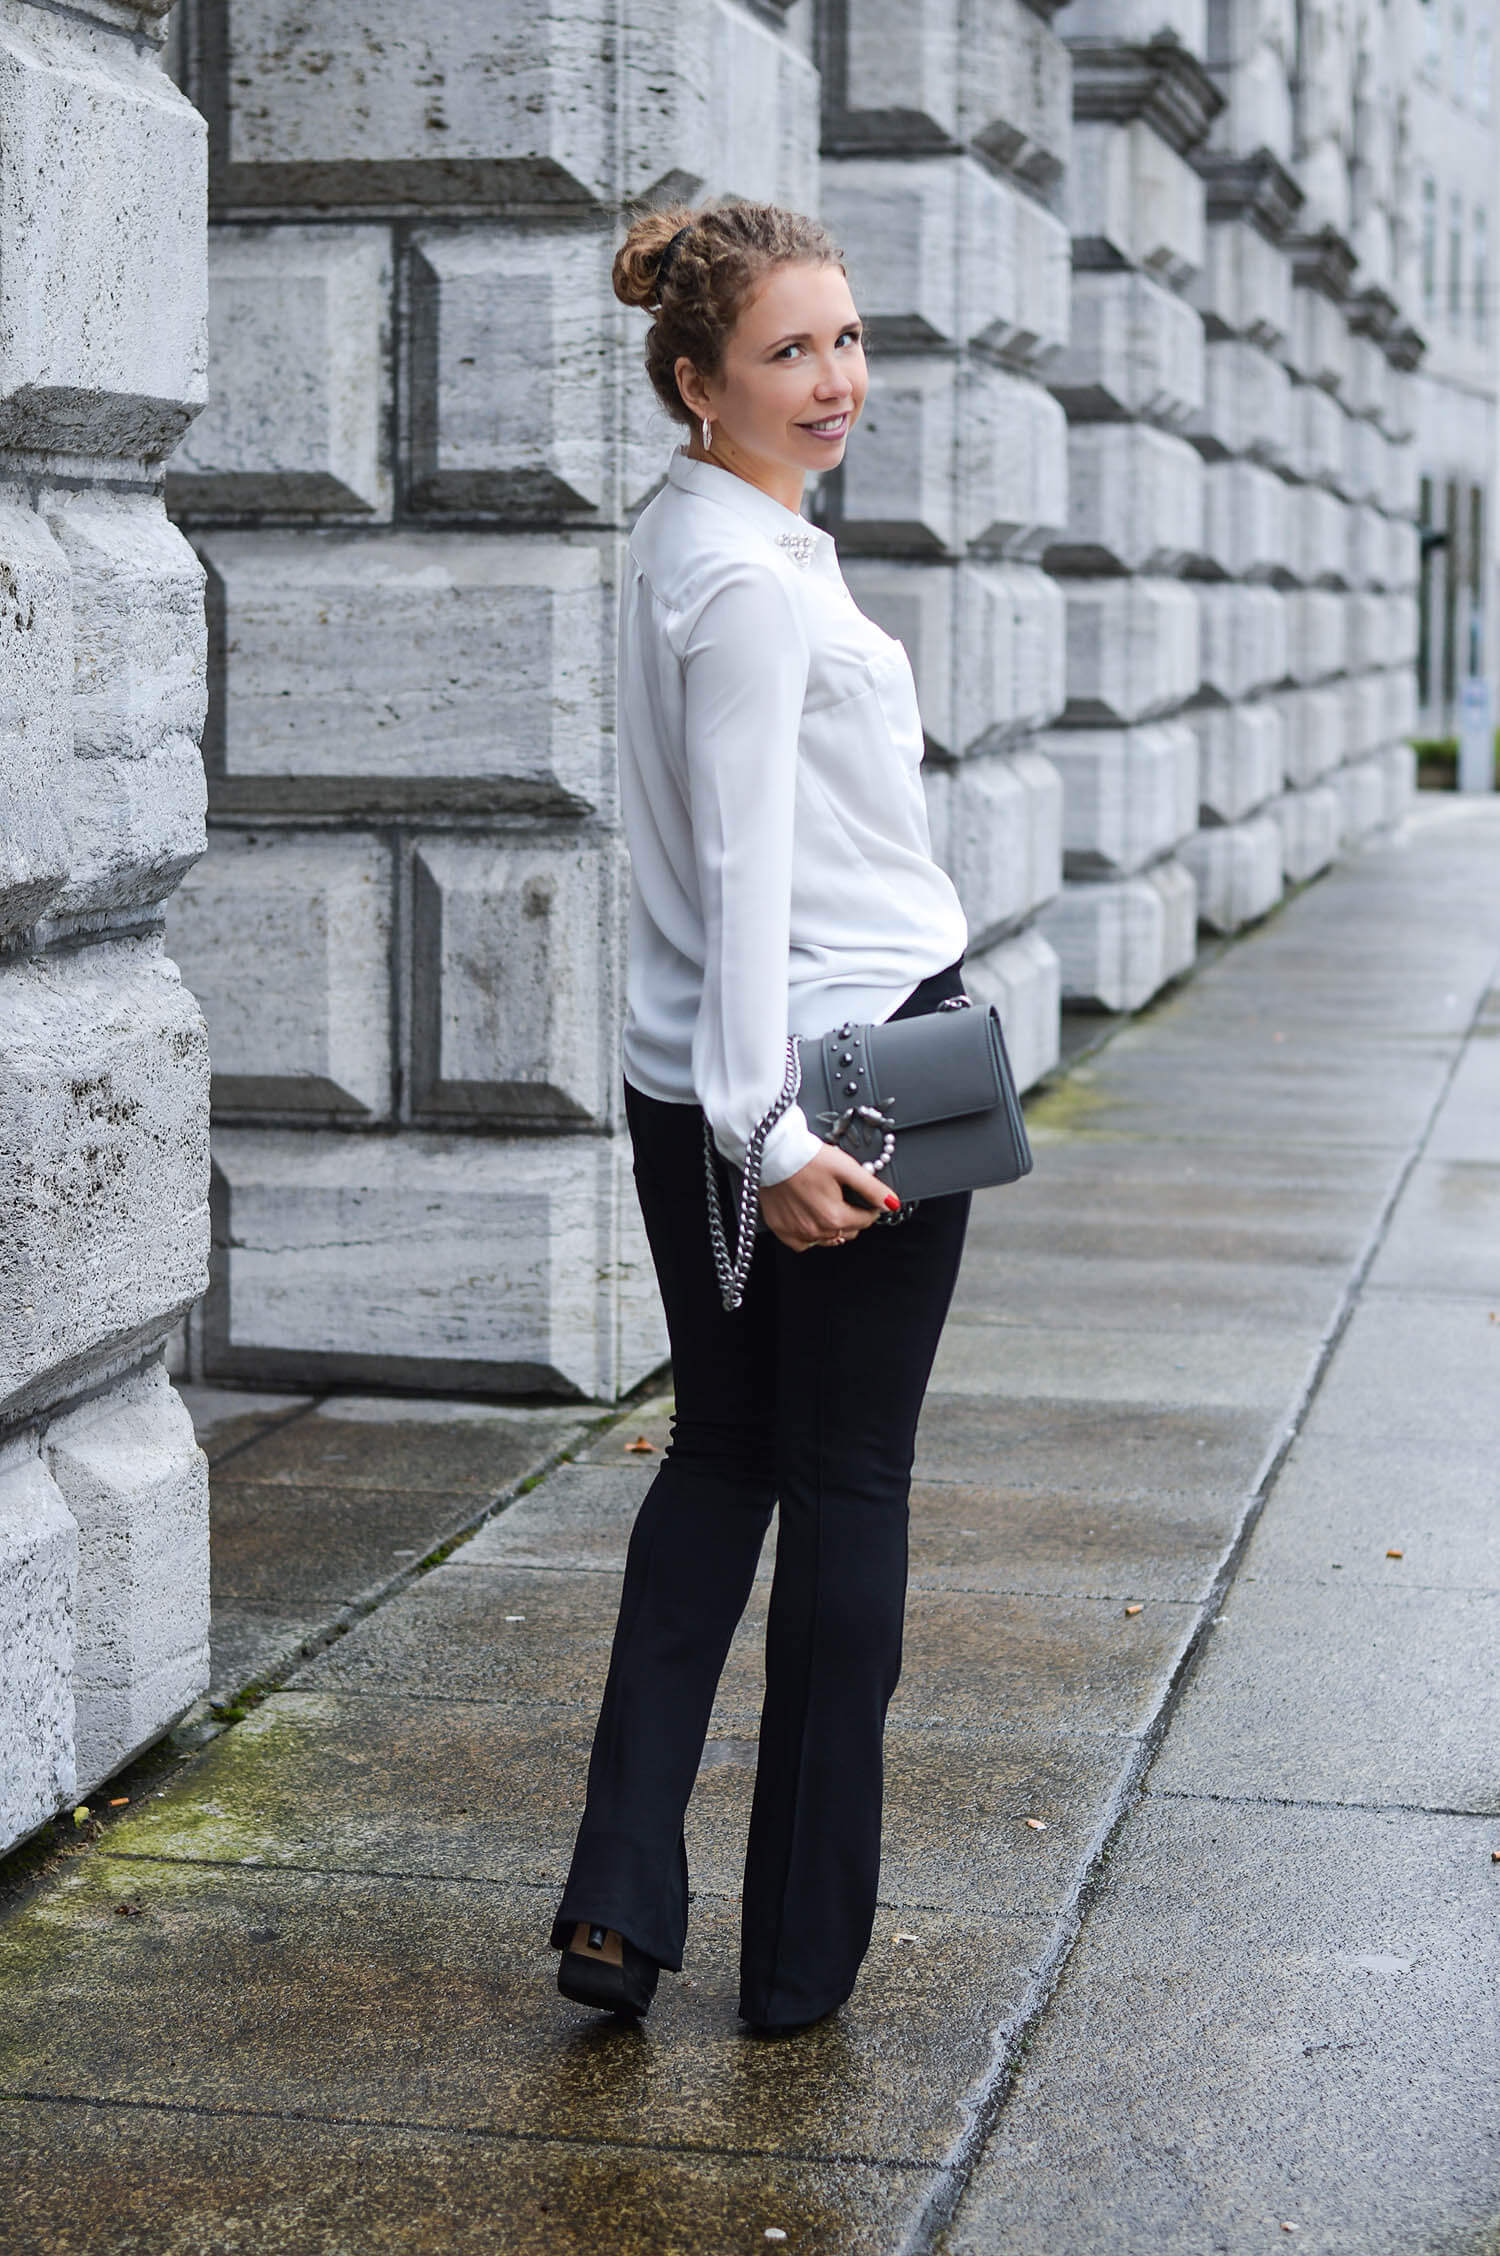 Kationette-fashionblogger-nrw-Outfit-White-Blouse-Flared-Pants-and-Pinko-Bag-blackandwhite-streetstyle